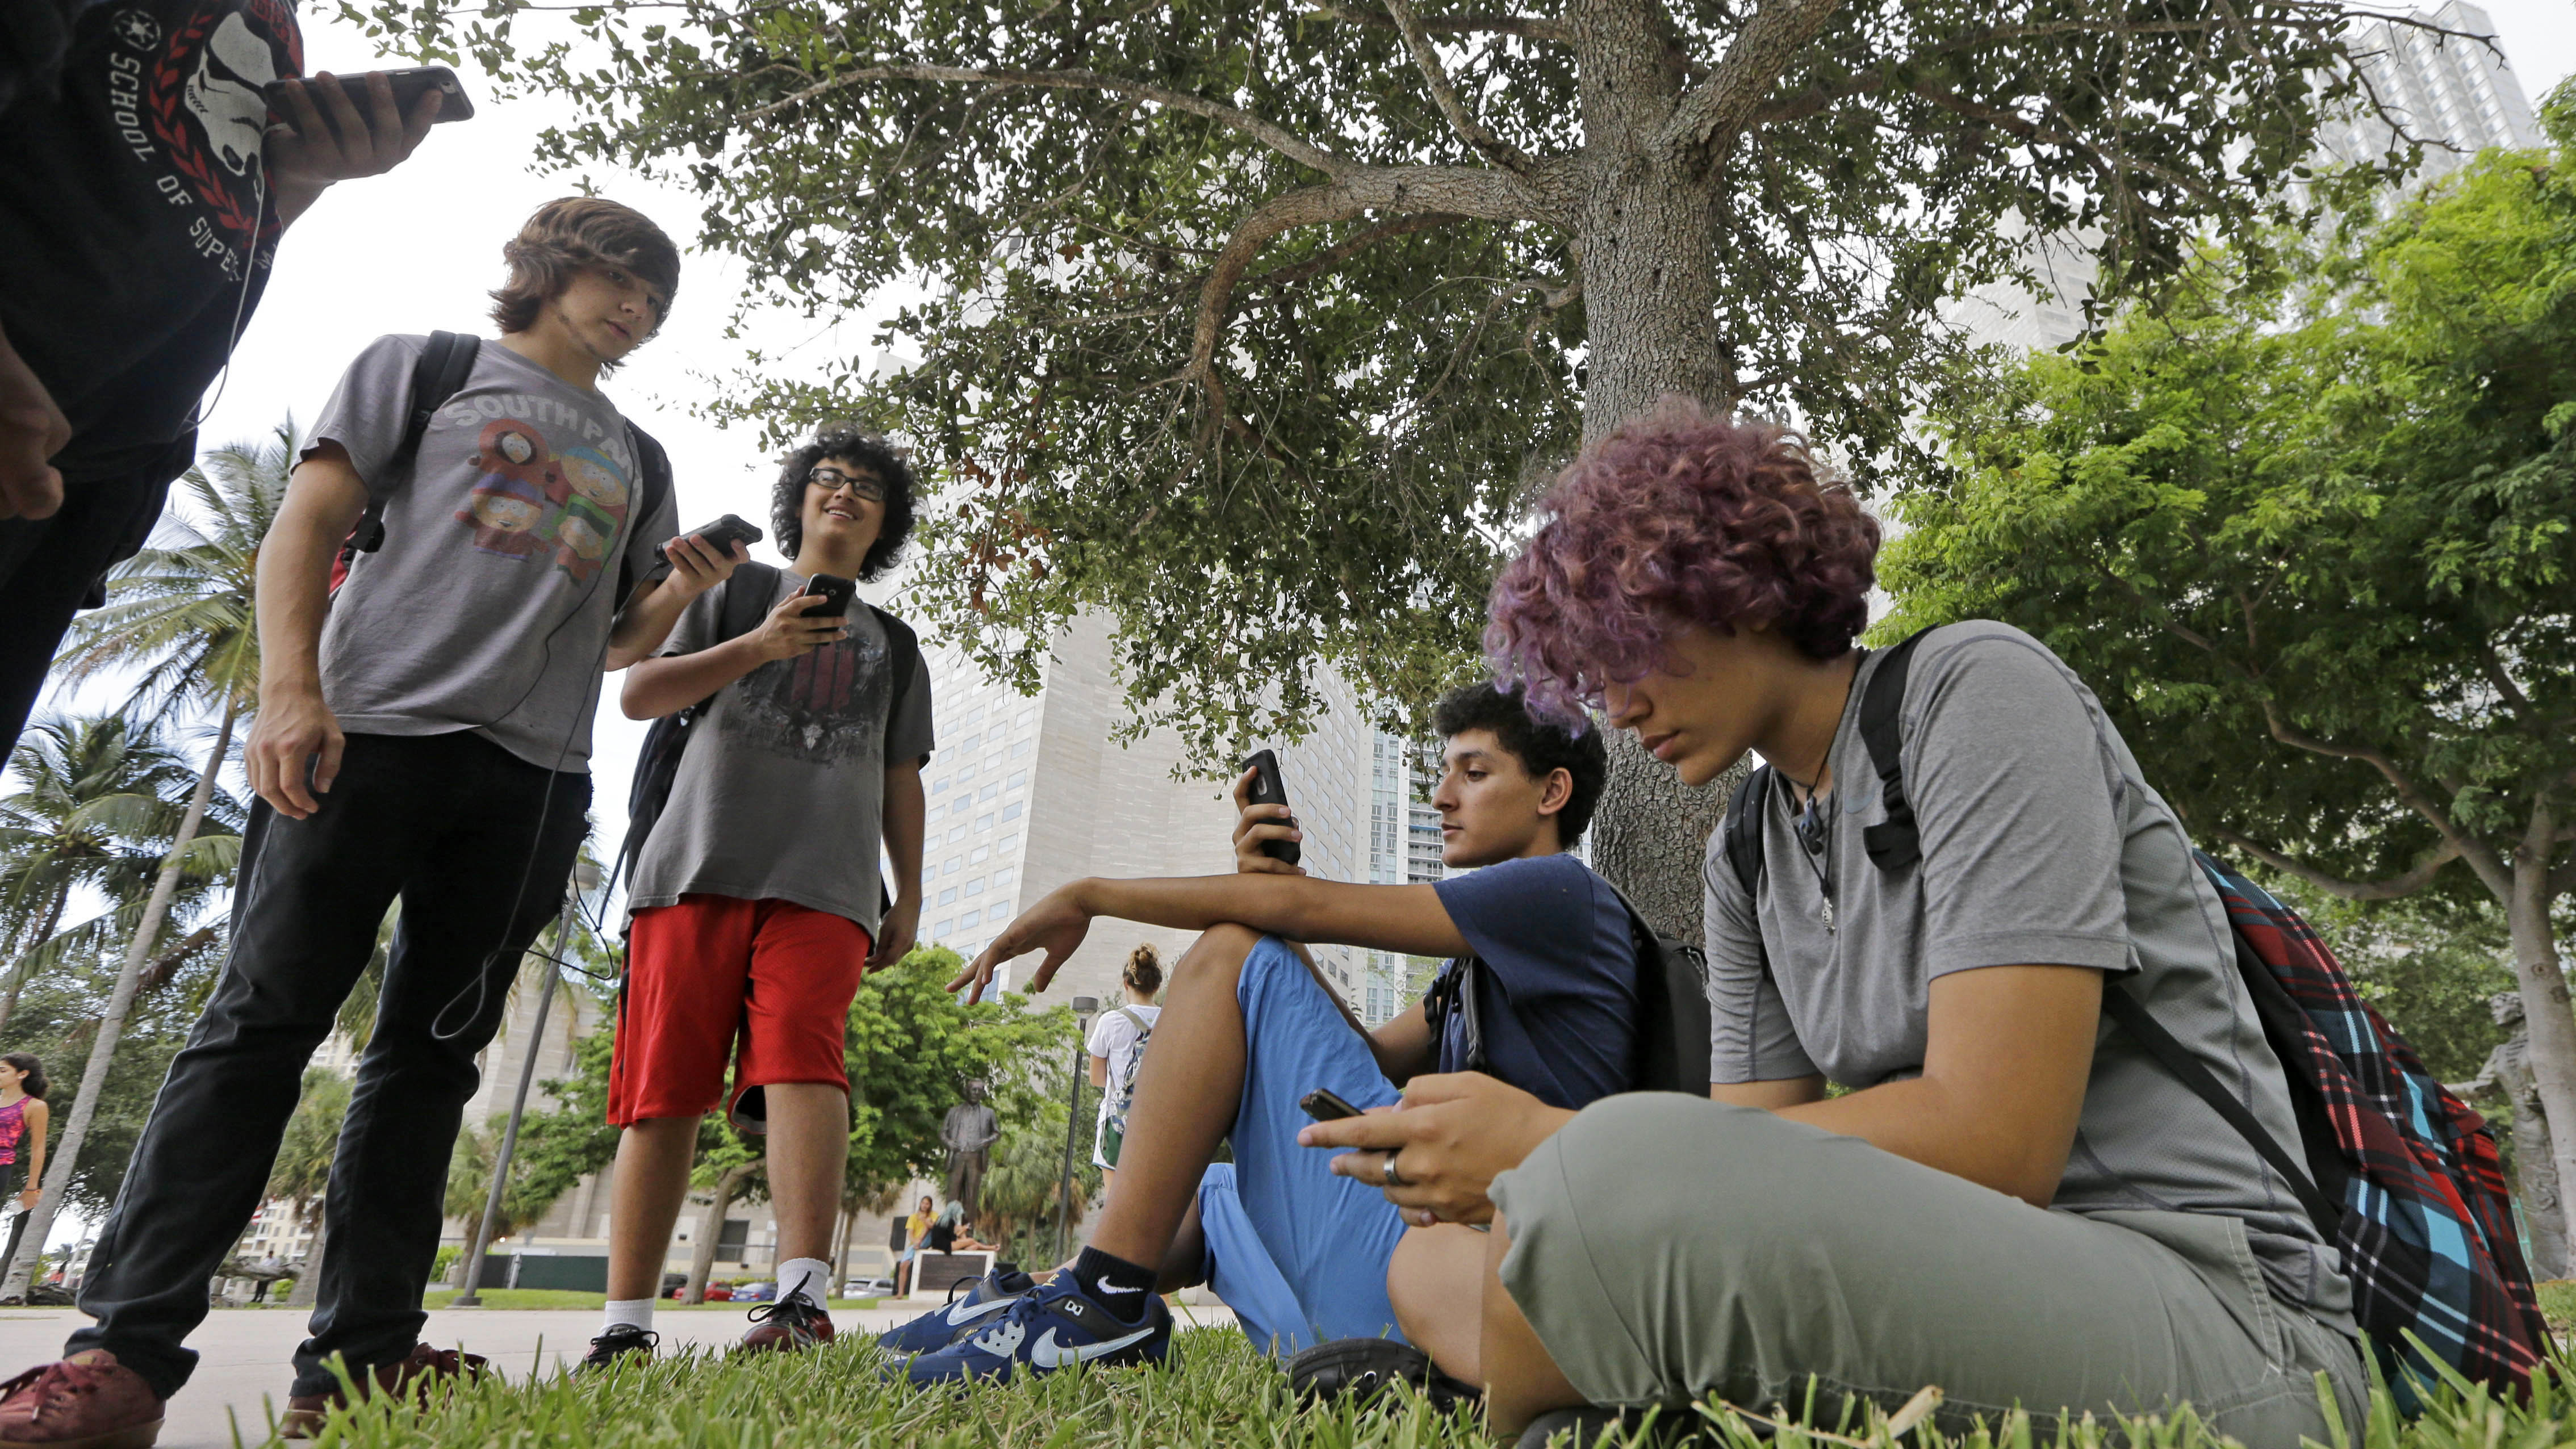 """Pokemon Go players Ana Valentina Ojeda, right, and Jaeden Valdespino, second from right, check their smartphones as they look for Pokemon, Tuesday, July 12, 2016, at Bayfront Park in downtown Miami. The """"Pokemon Go"""" craze has sent legions of players hiking around cities and battling with """"pocket monsters"""" on their smartphones. (AP Photo/Alan Diaz)"""